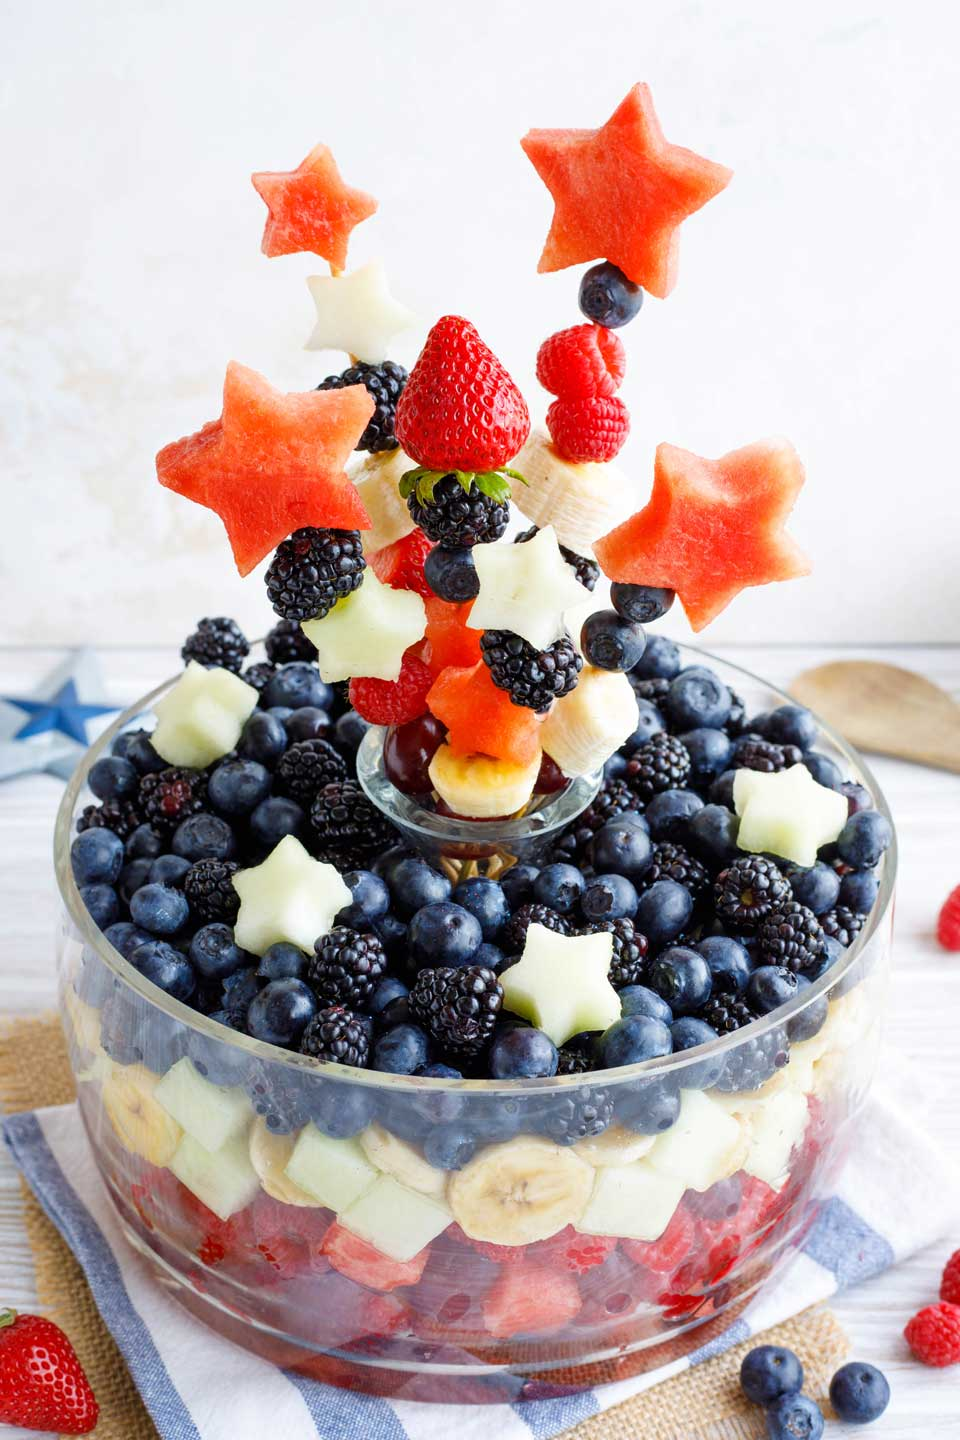 Layered red, white and blue fruit salad - turned into a centerpiece by adding fruit kabobs to a vase at the center